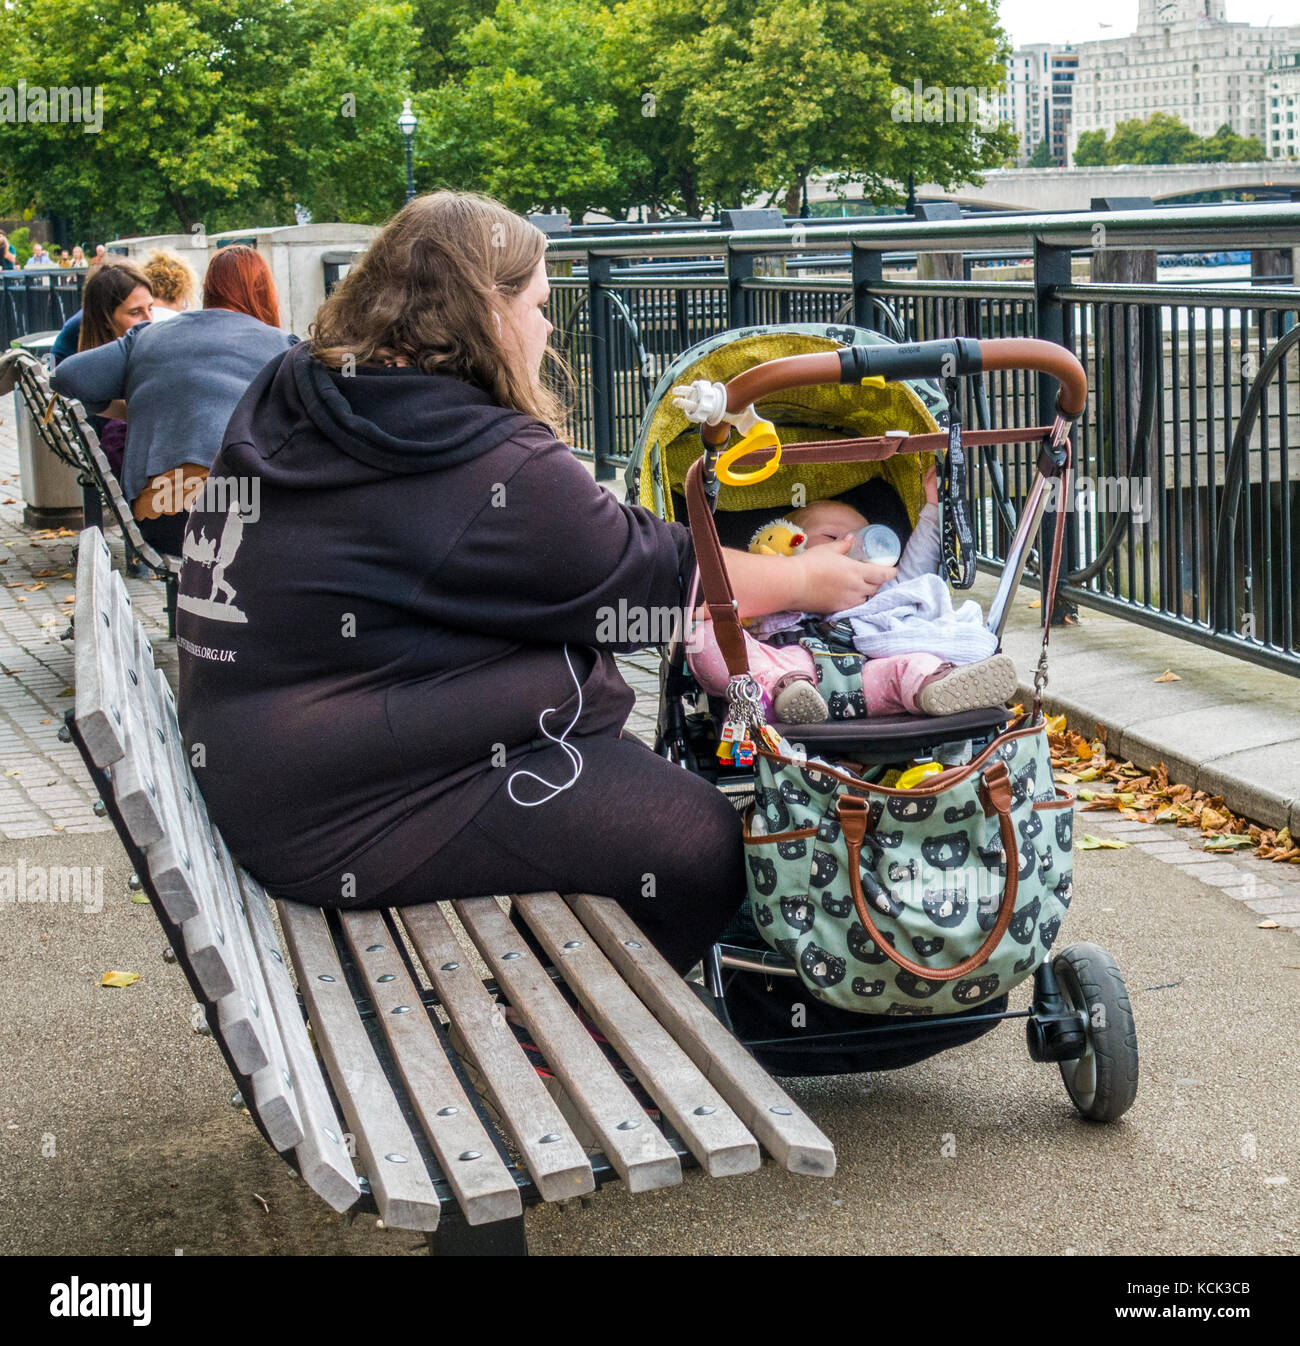 Overweight, single parent, teenage mother, sitting on a wooden bench, bottle feeding milk to her baby in a pushchair, Stock Photo